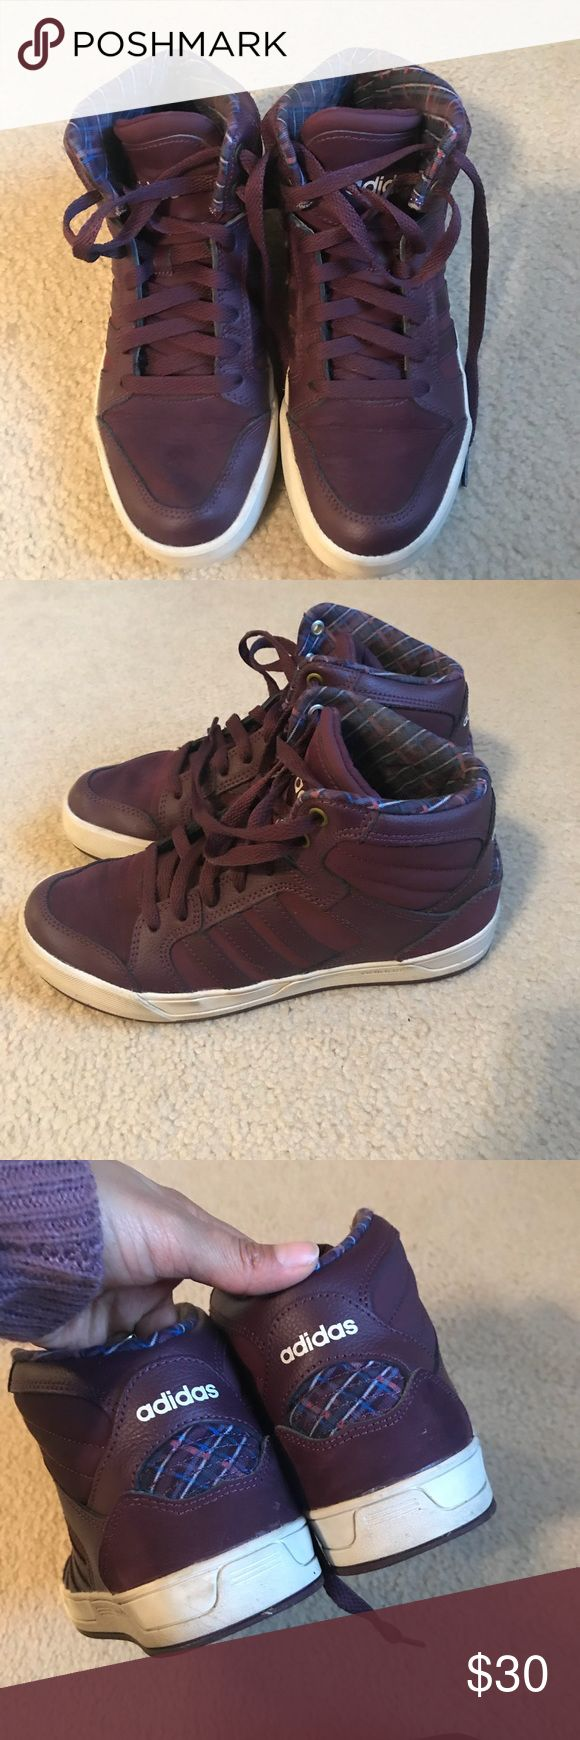 Adidas NEO high tops Good used condition they just need a little cleaning adidas Shoes Sneakers